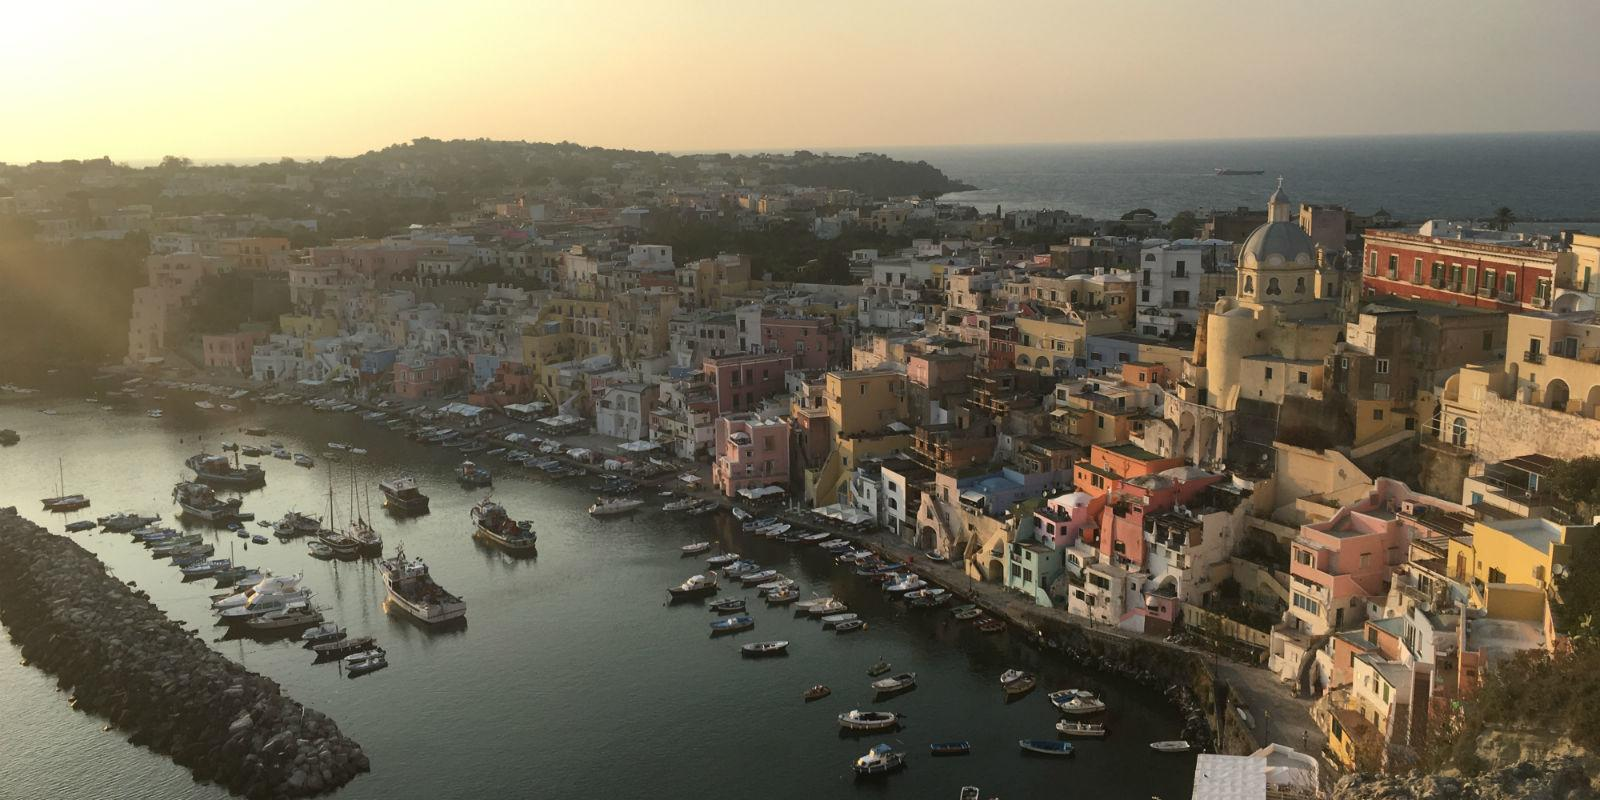 End of summer flotilla in Capri, Procida and Ischia